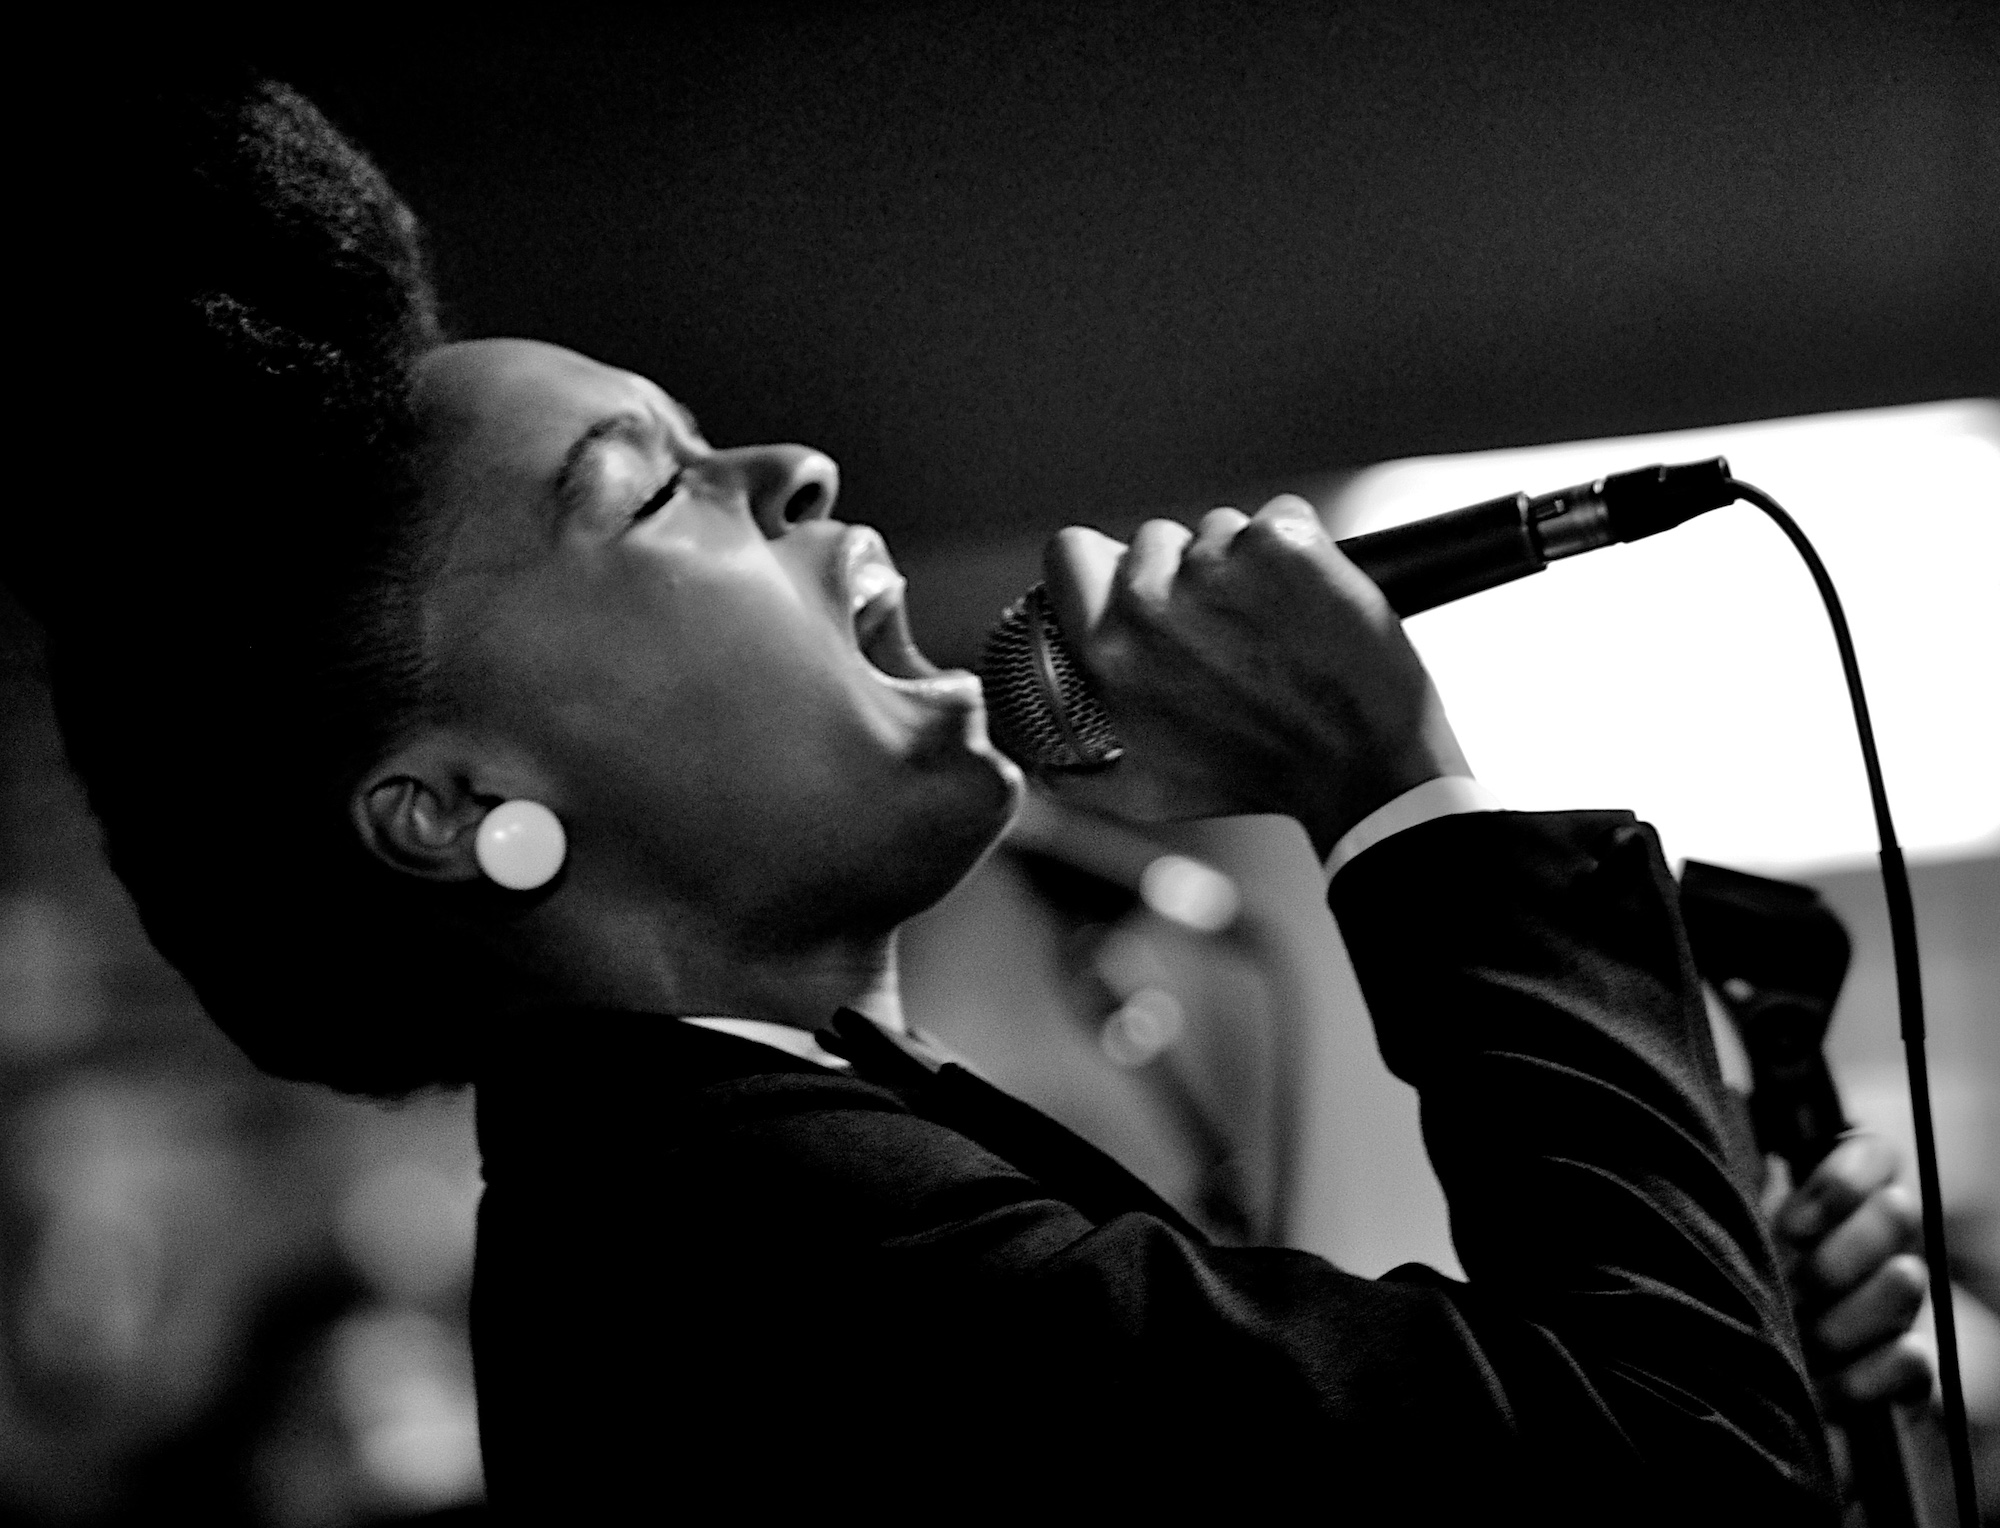 Janelle Monáe performs at Cactus Music. June 13, 2010